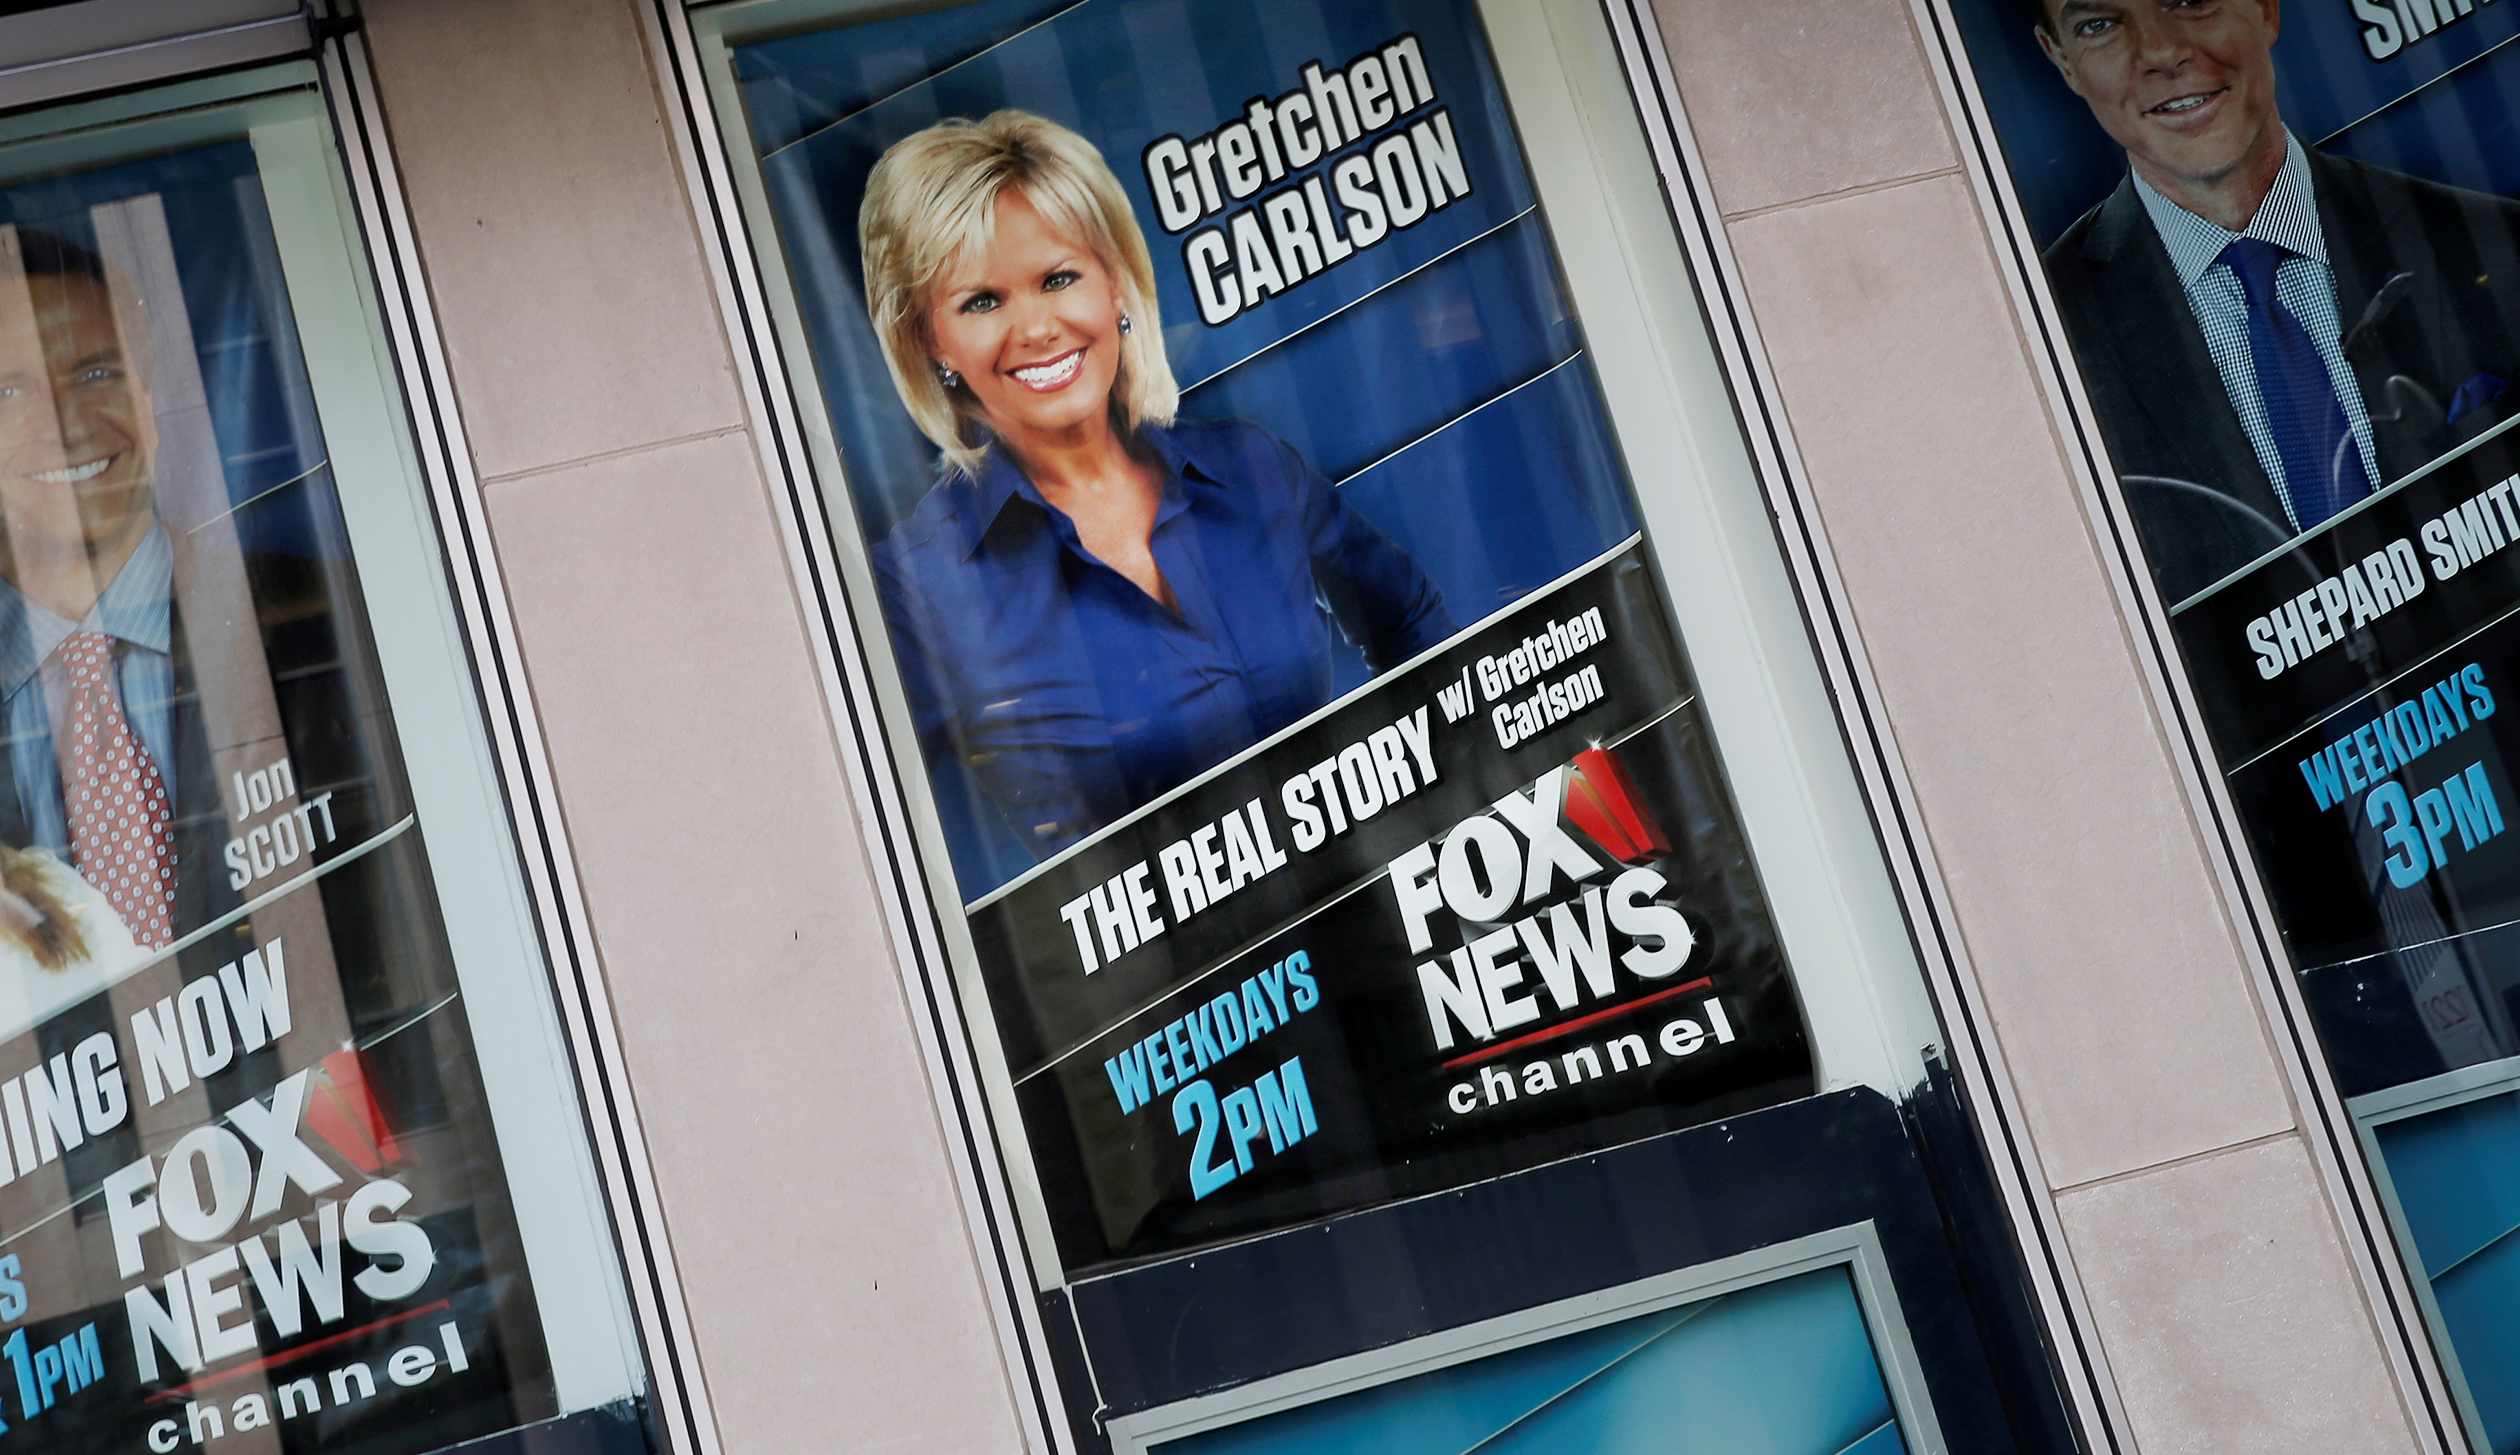 Posters of Fox News personalities including Gretchen Carlson are seen at the News Corporation headquarters building in New York